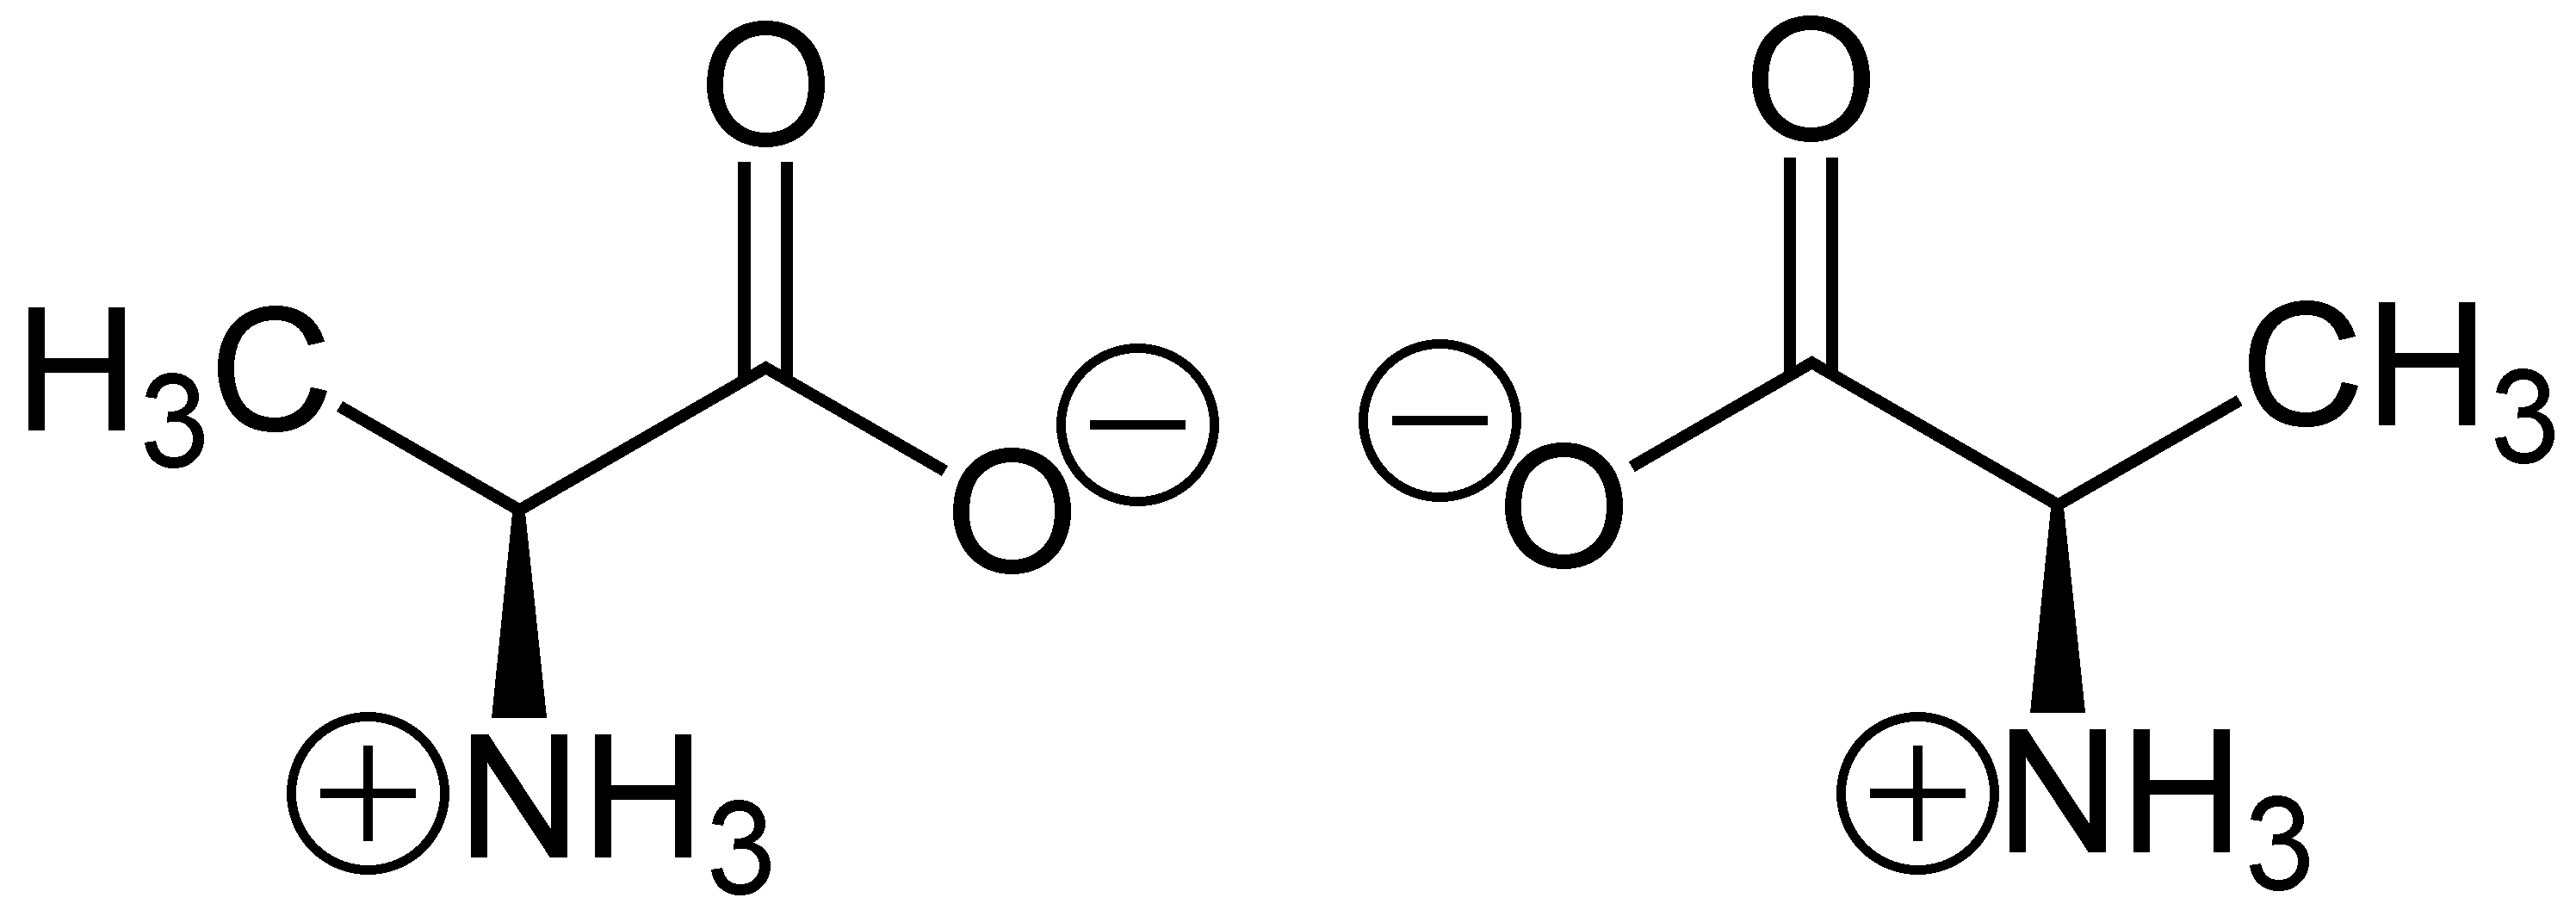 How Amino Acid Chirality Works